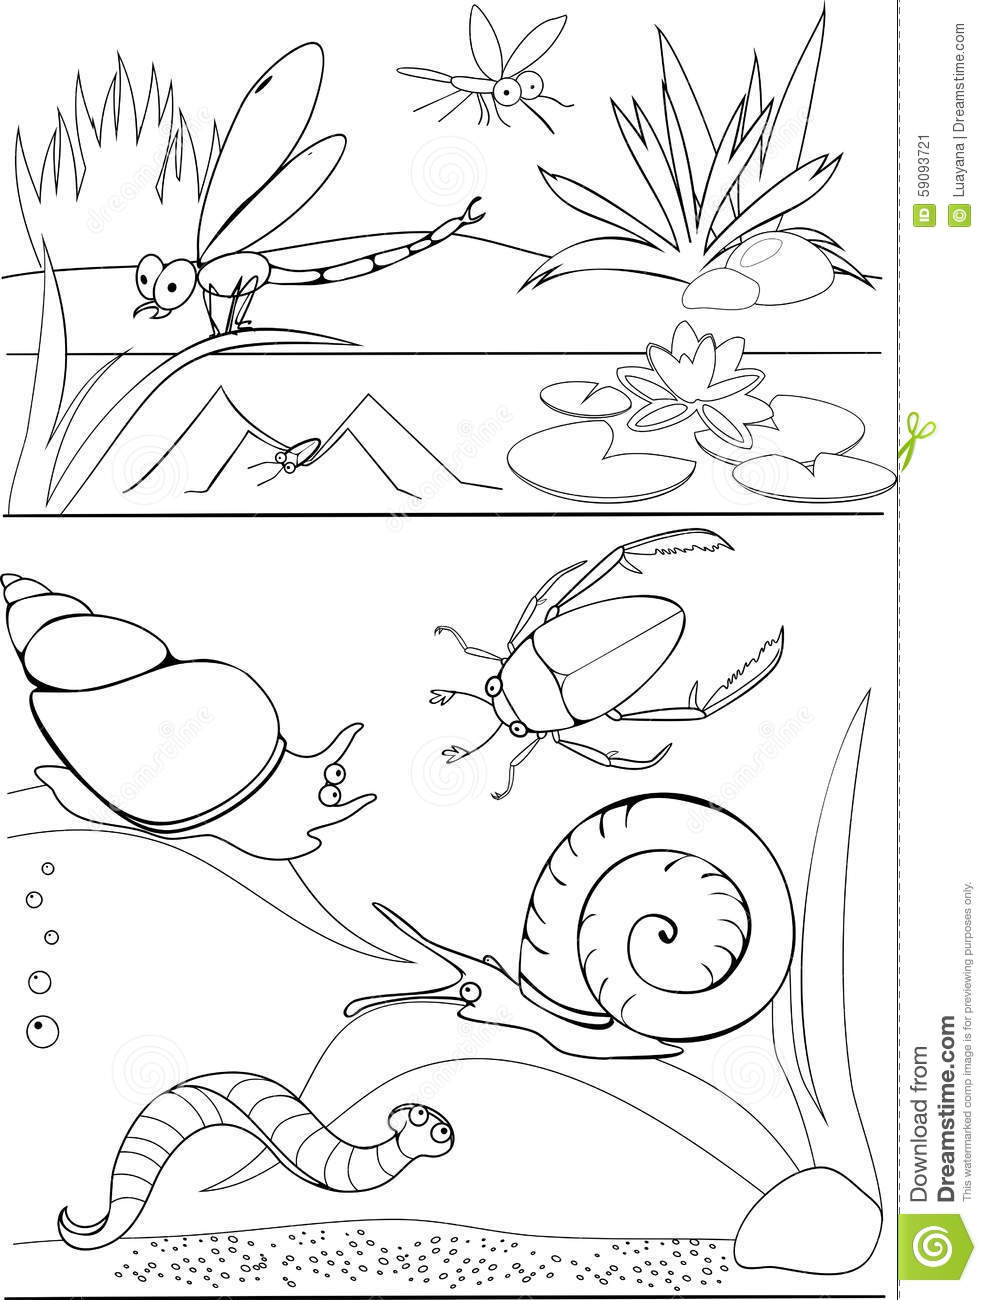 pond coloring pages coloring pond stock vector illustration of design coloring pages pond